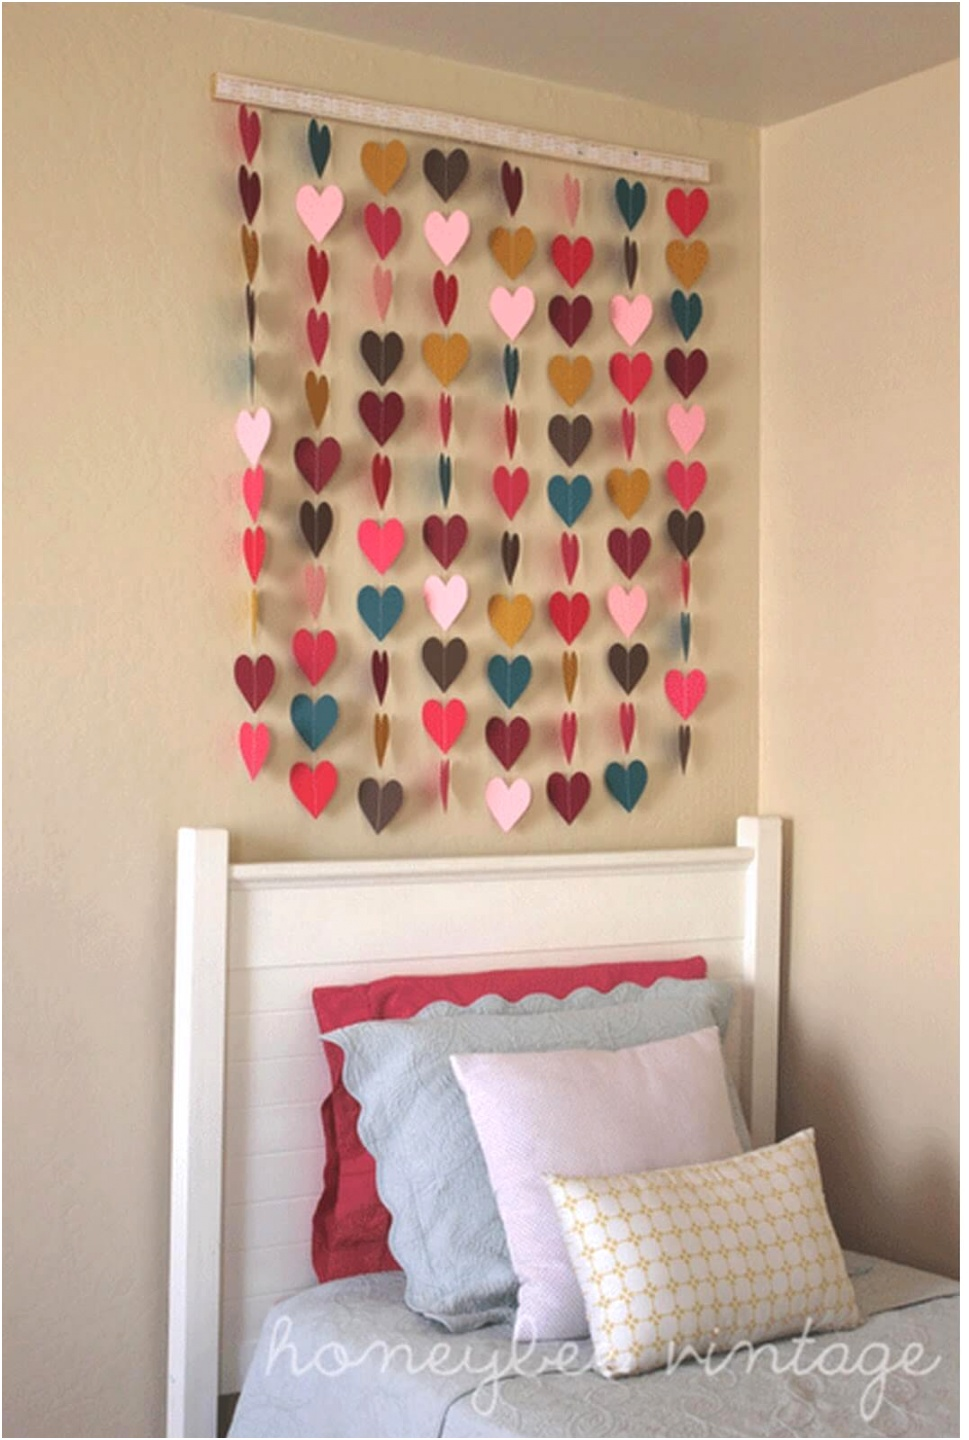 13 diy wall hanging ideas homebnc